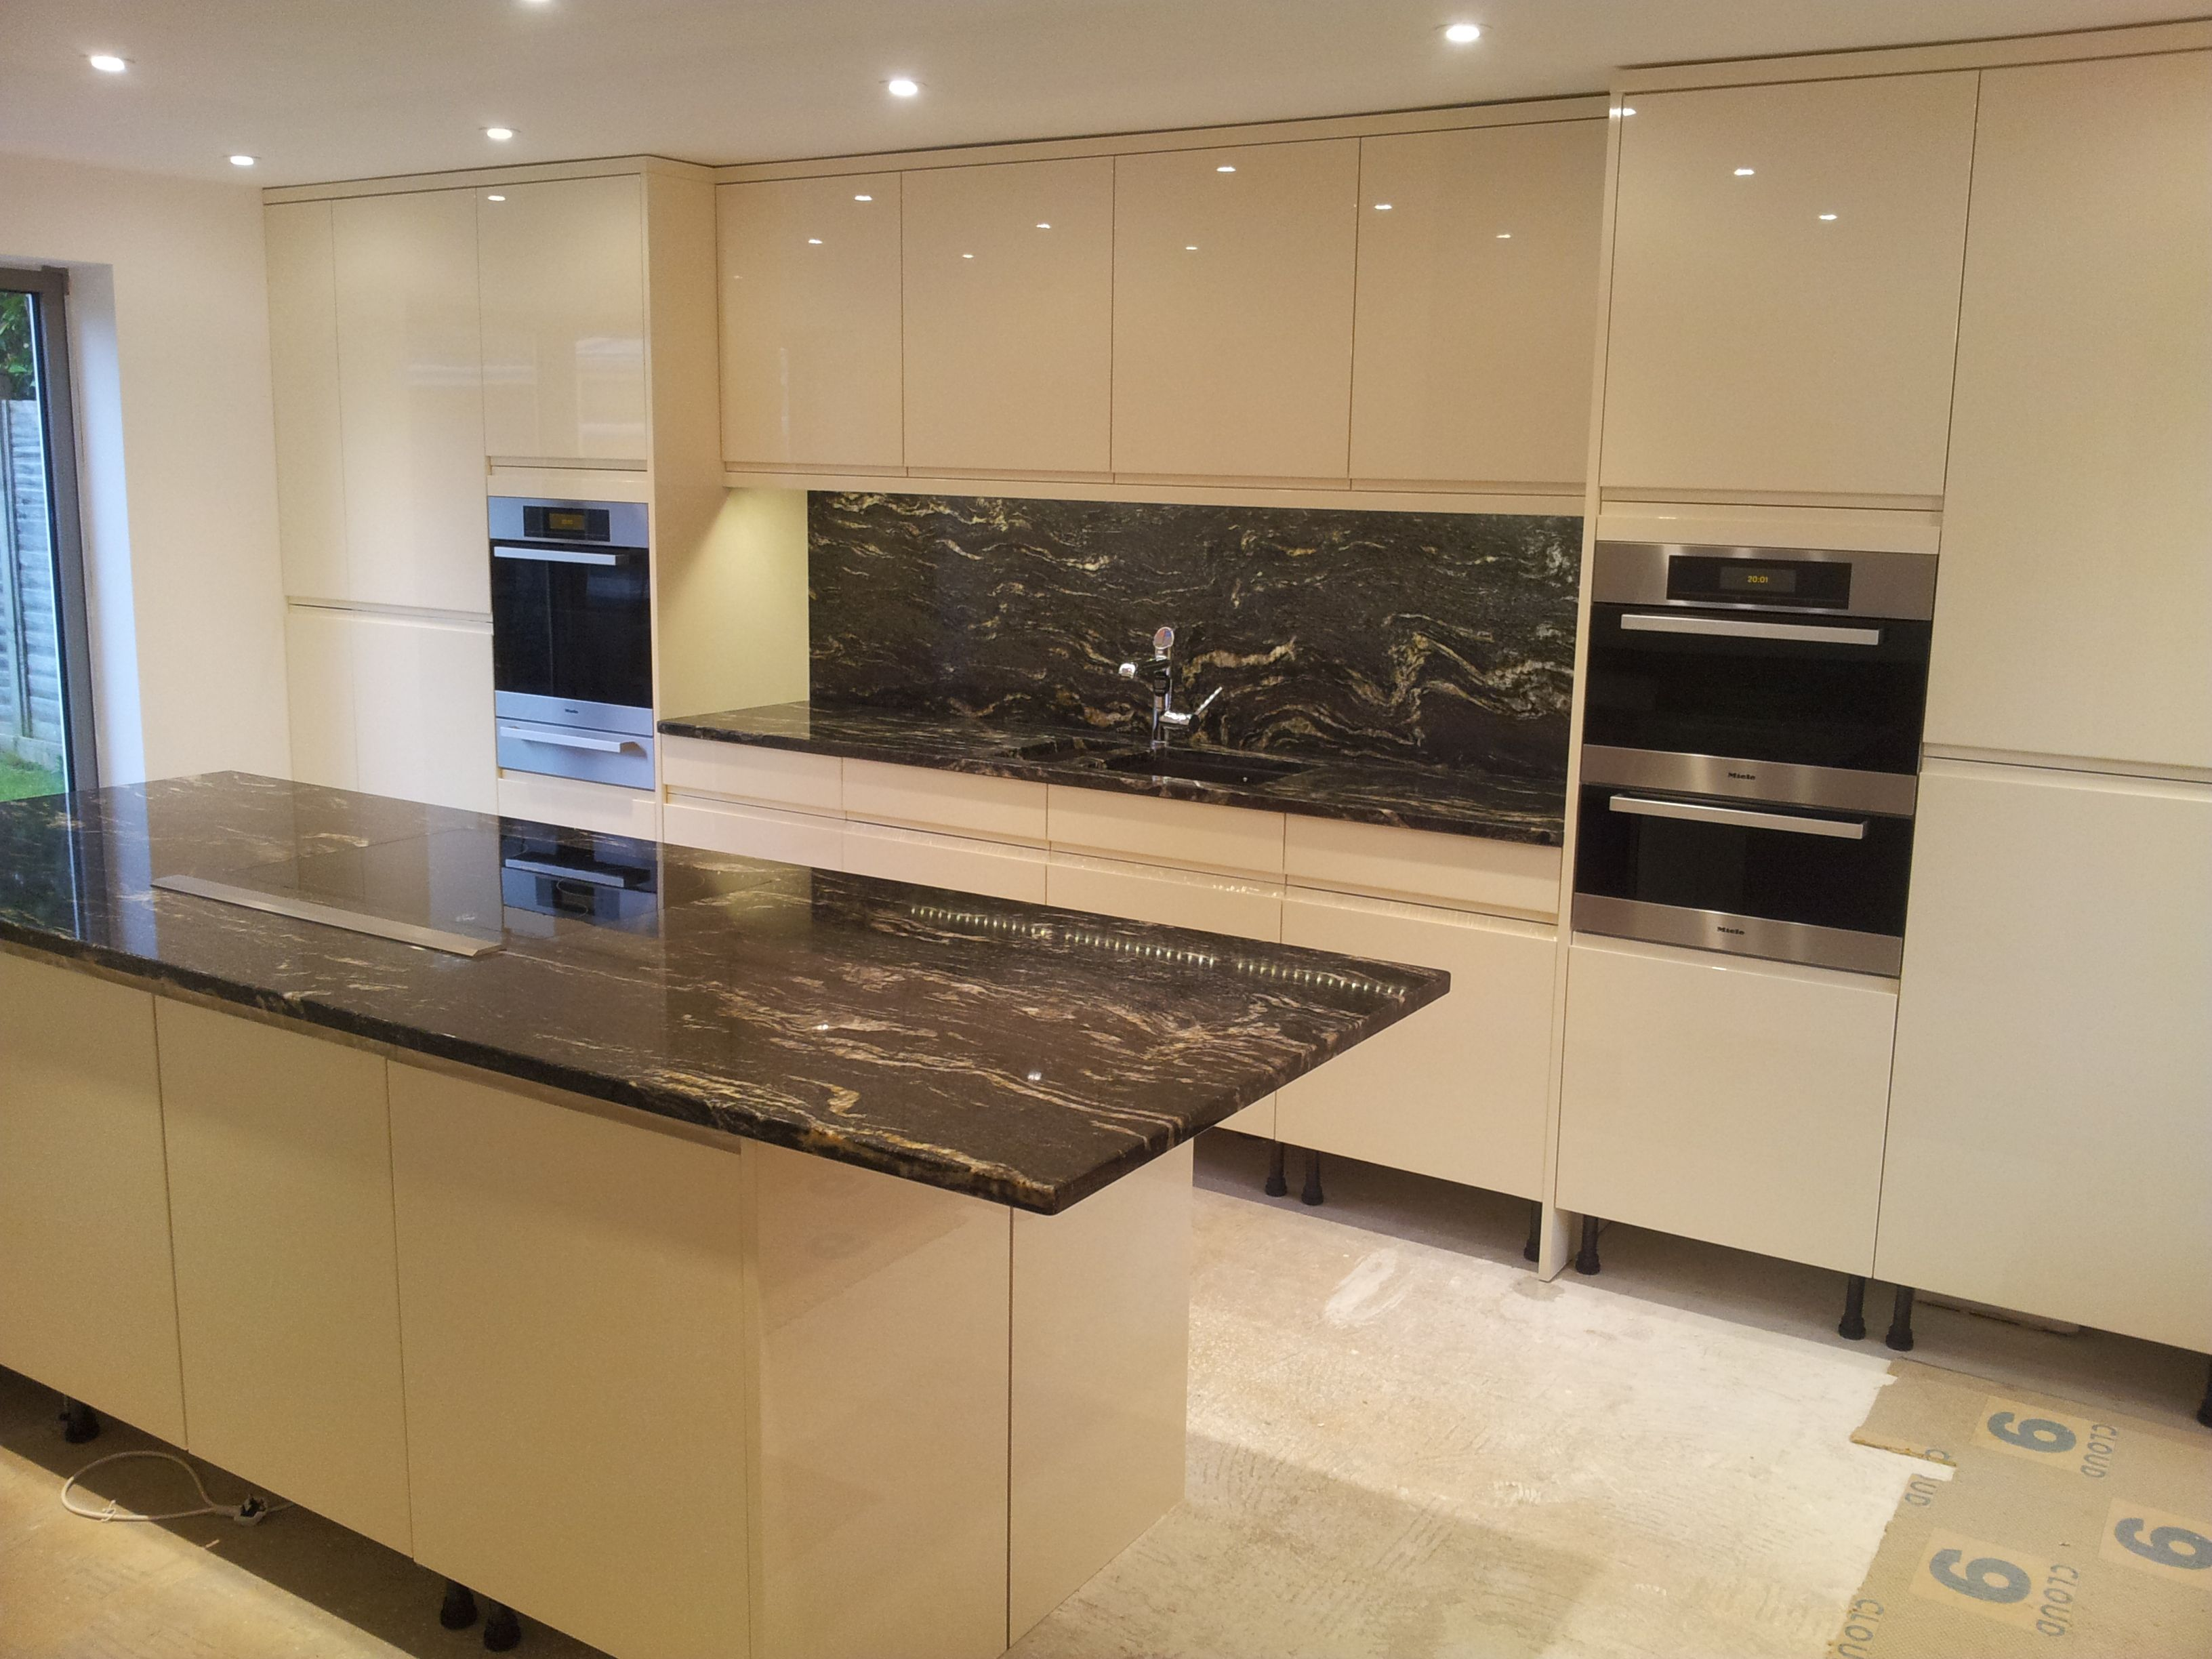 cosmic black granite worktops installed in frampton cotteral south gloucestershire - Kchen Mit Weien Schrnken Und Arbeitsplatten Aus Granit